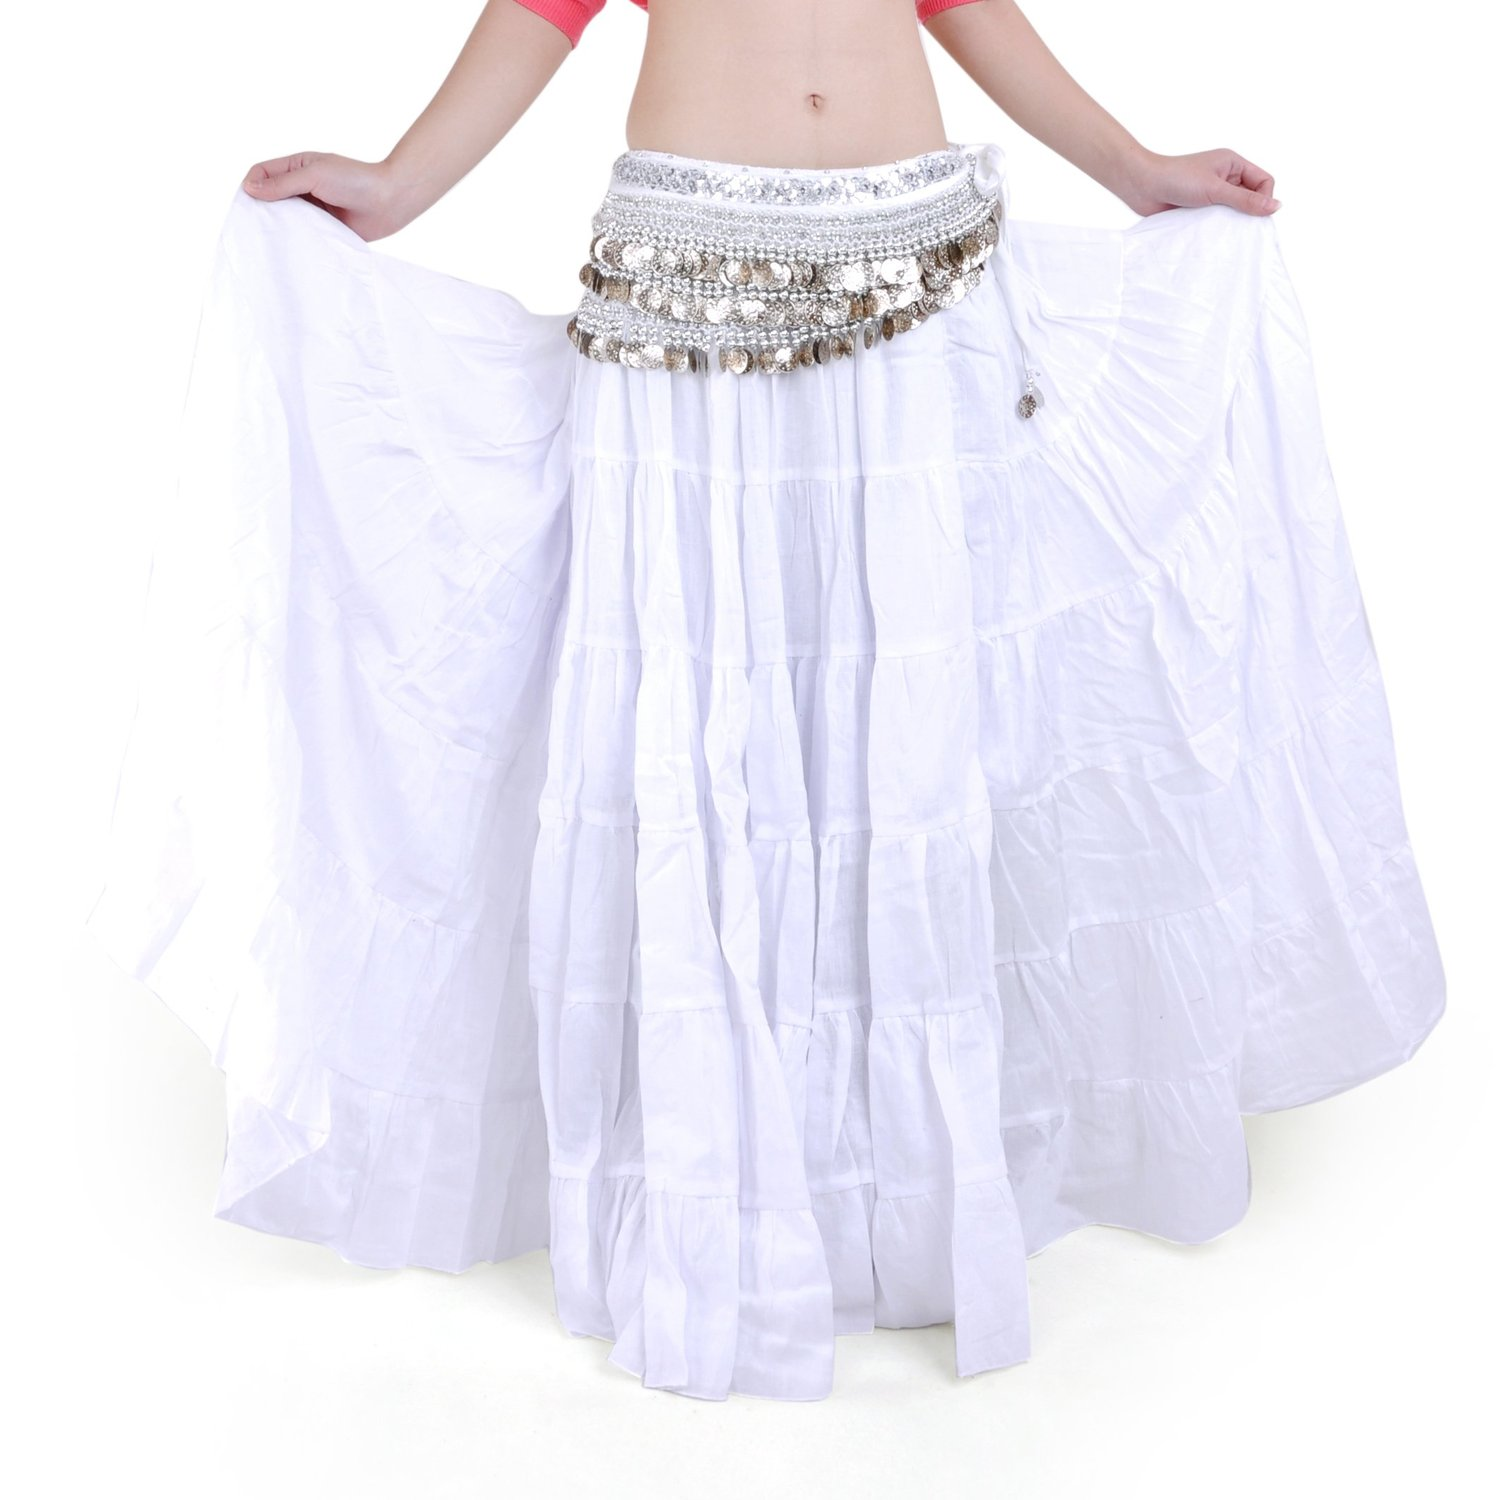 37d831222e Women Tribal Bellydance Skirt Double Layers Solid Cotton Spanish Flamenco  Dress Full Circle Belly Dance Gypsy Skirts ATS01039